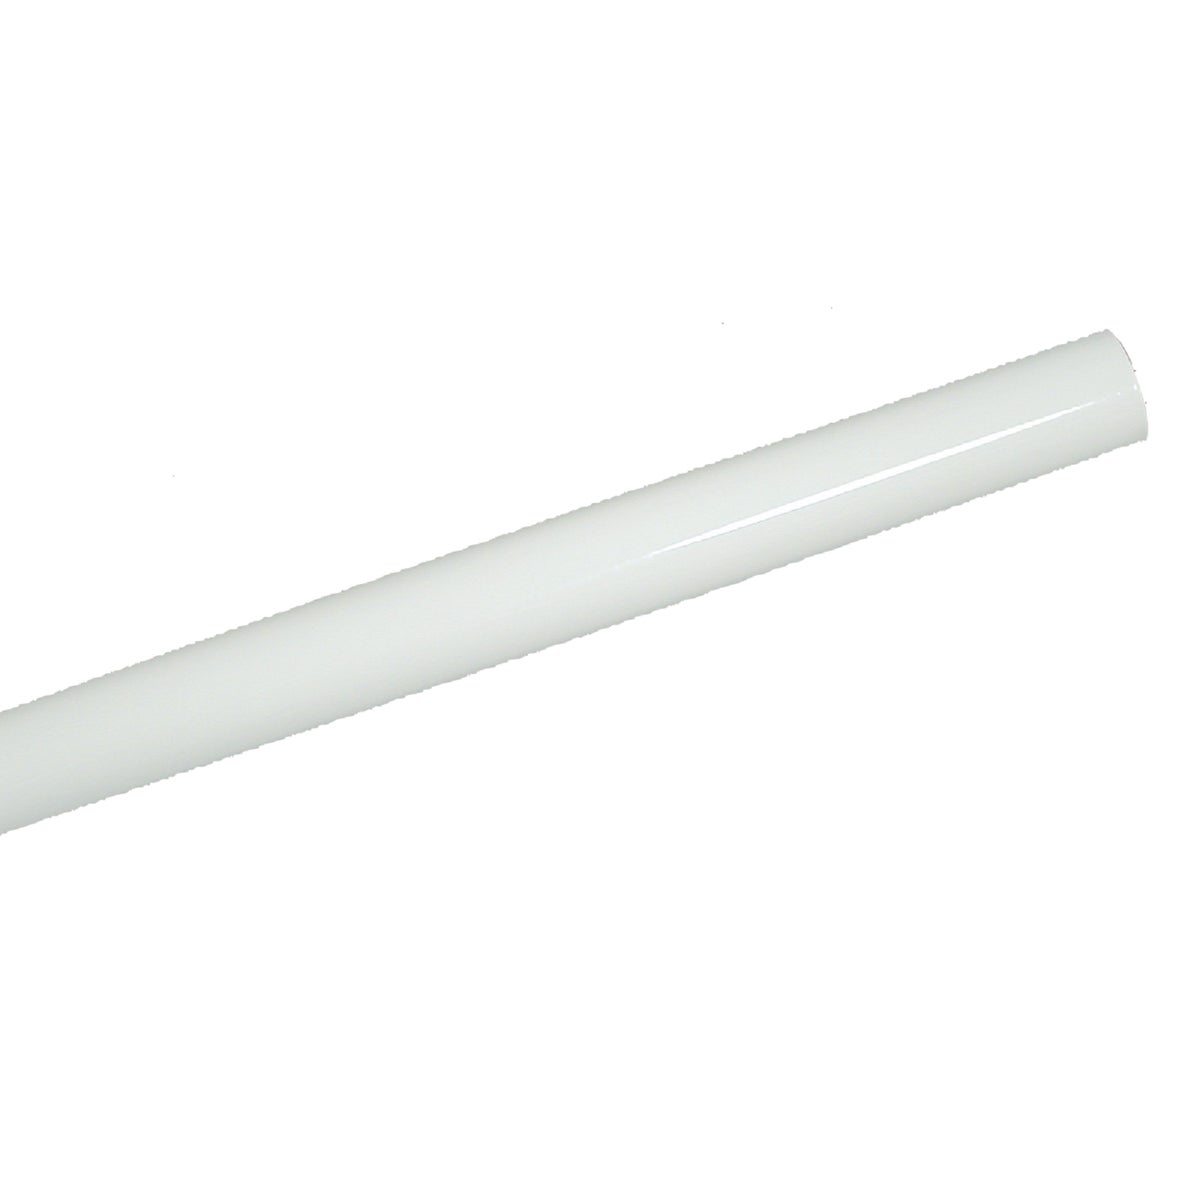 6' WHITE CLOSET POLE - 0018-6 by Knape & Vogt Mfg Co